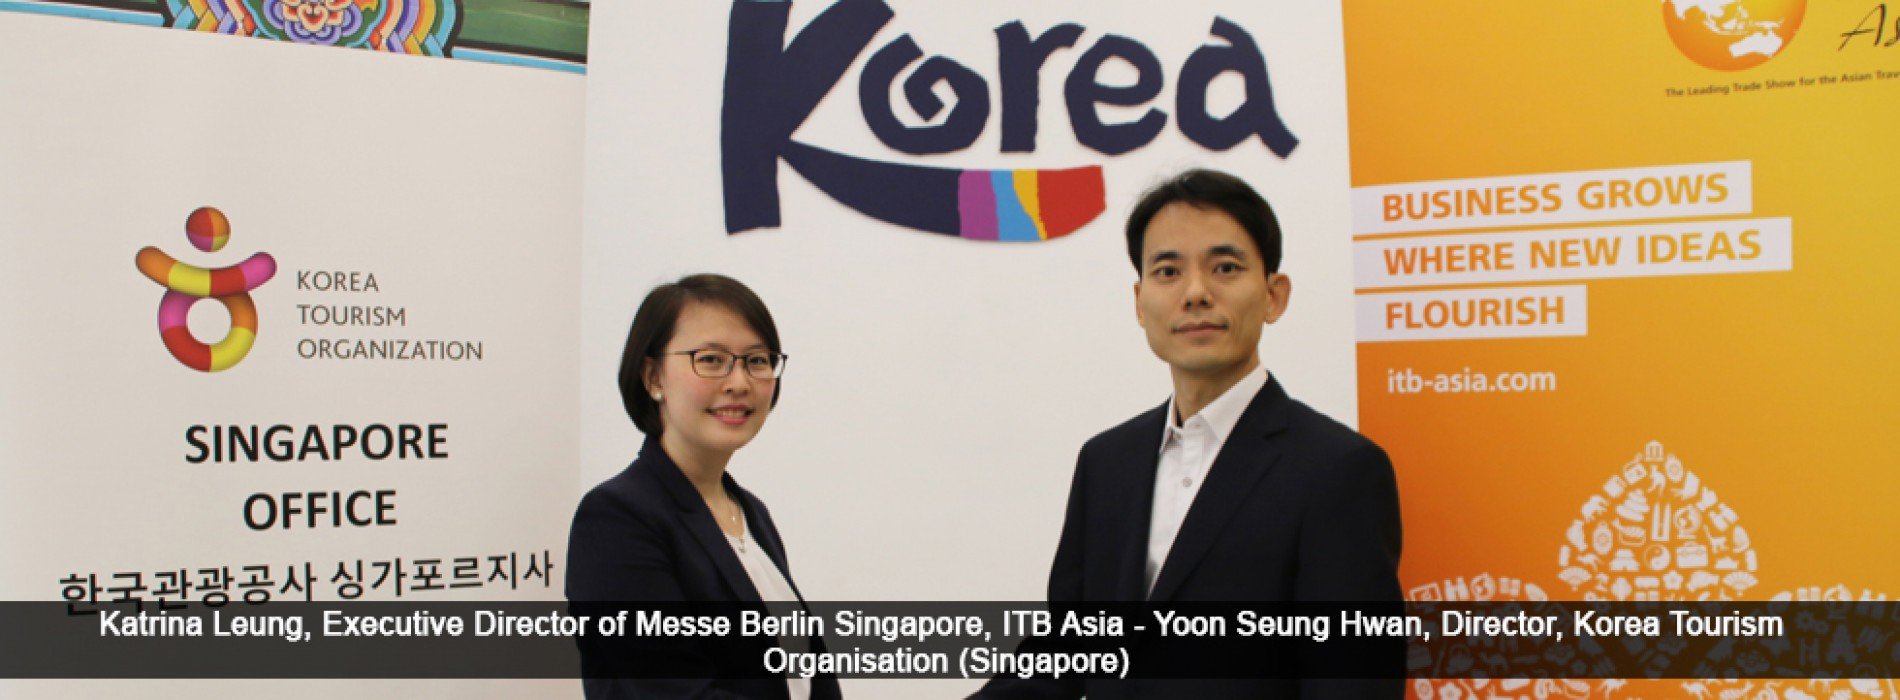 ITB Asia 2017 announces major partnership with Korea Tourism Organization